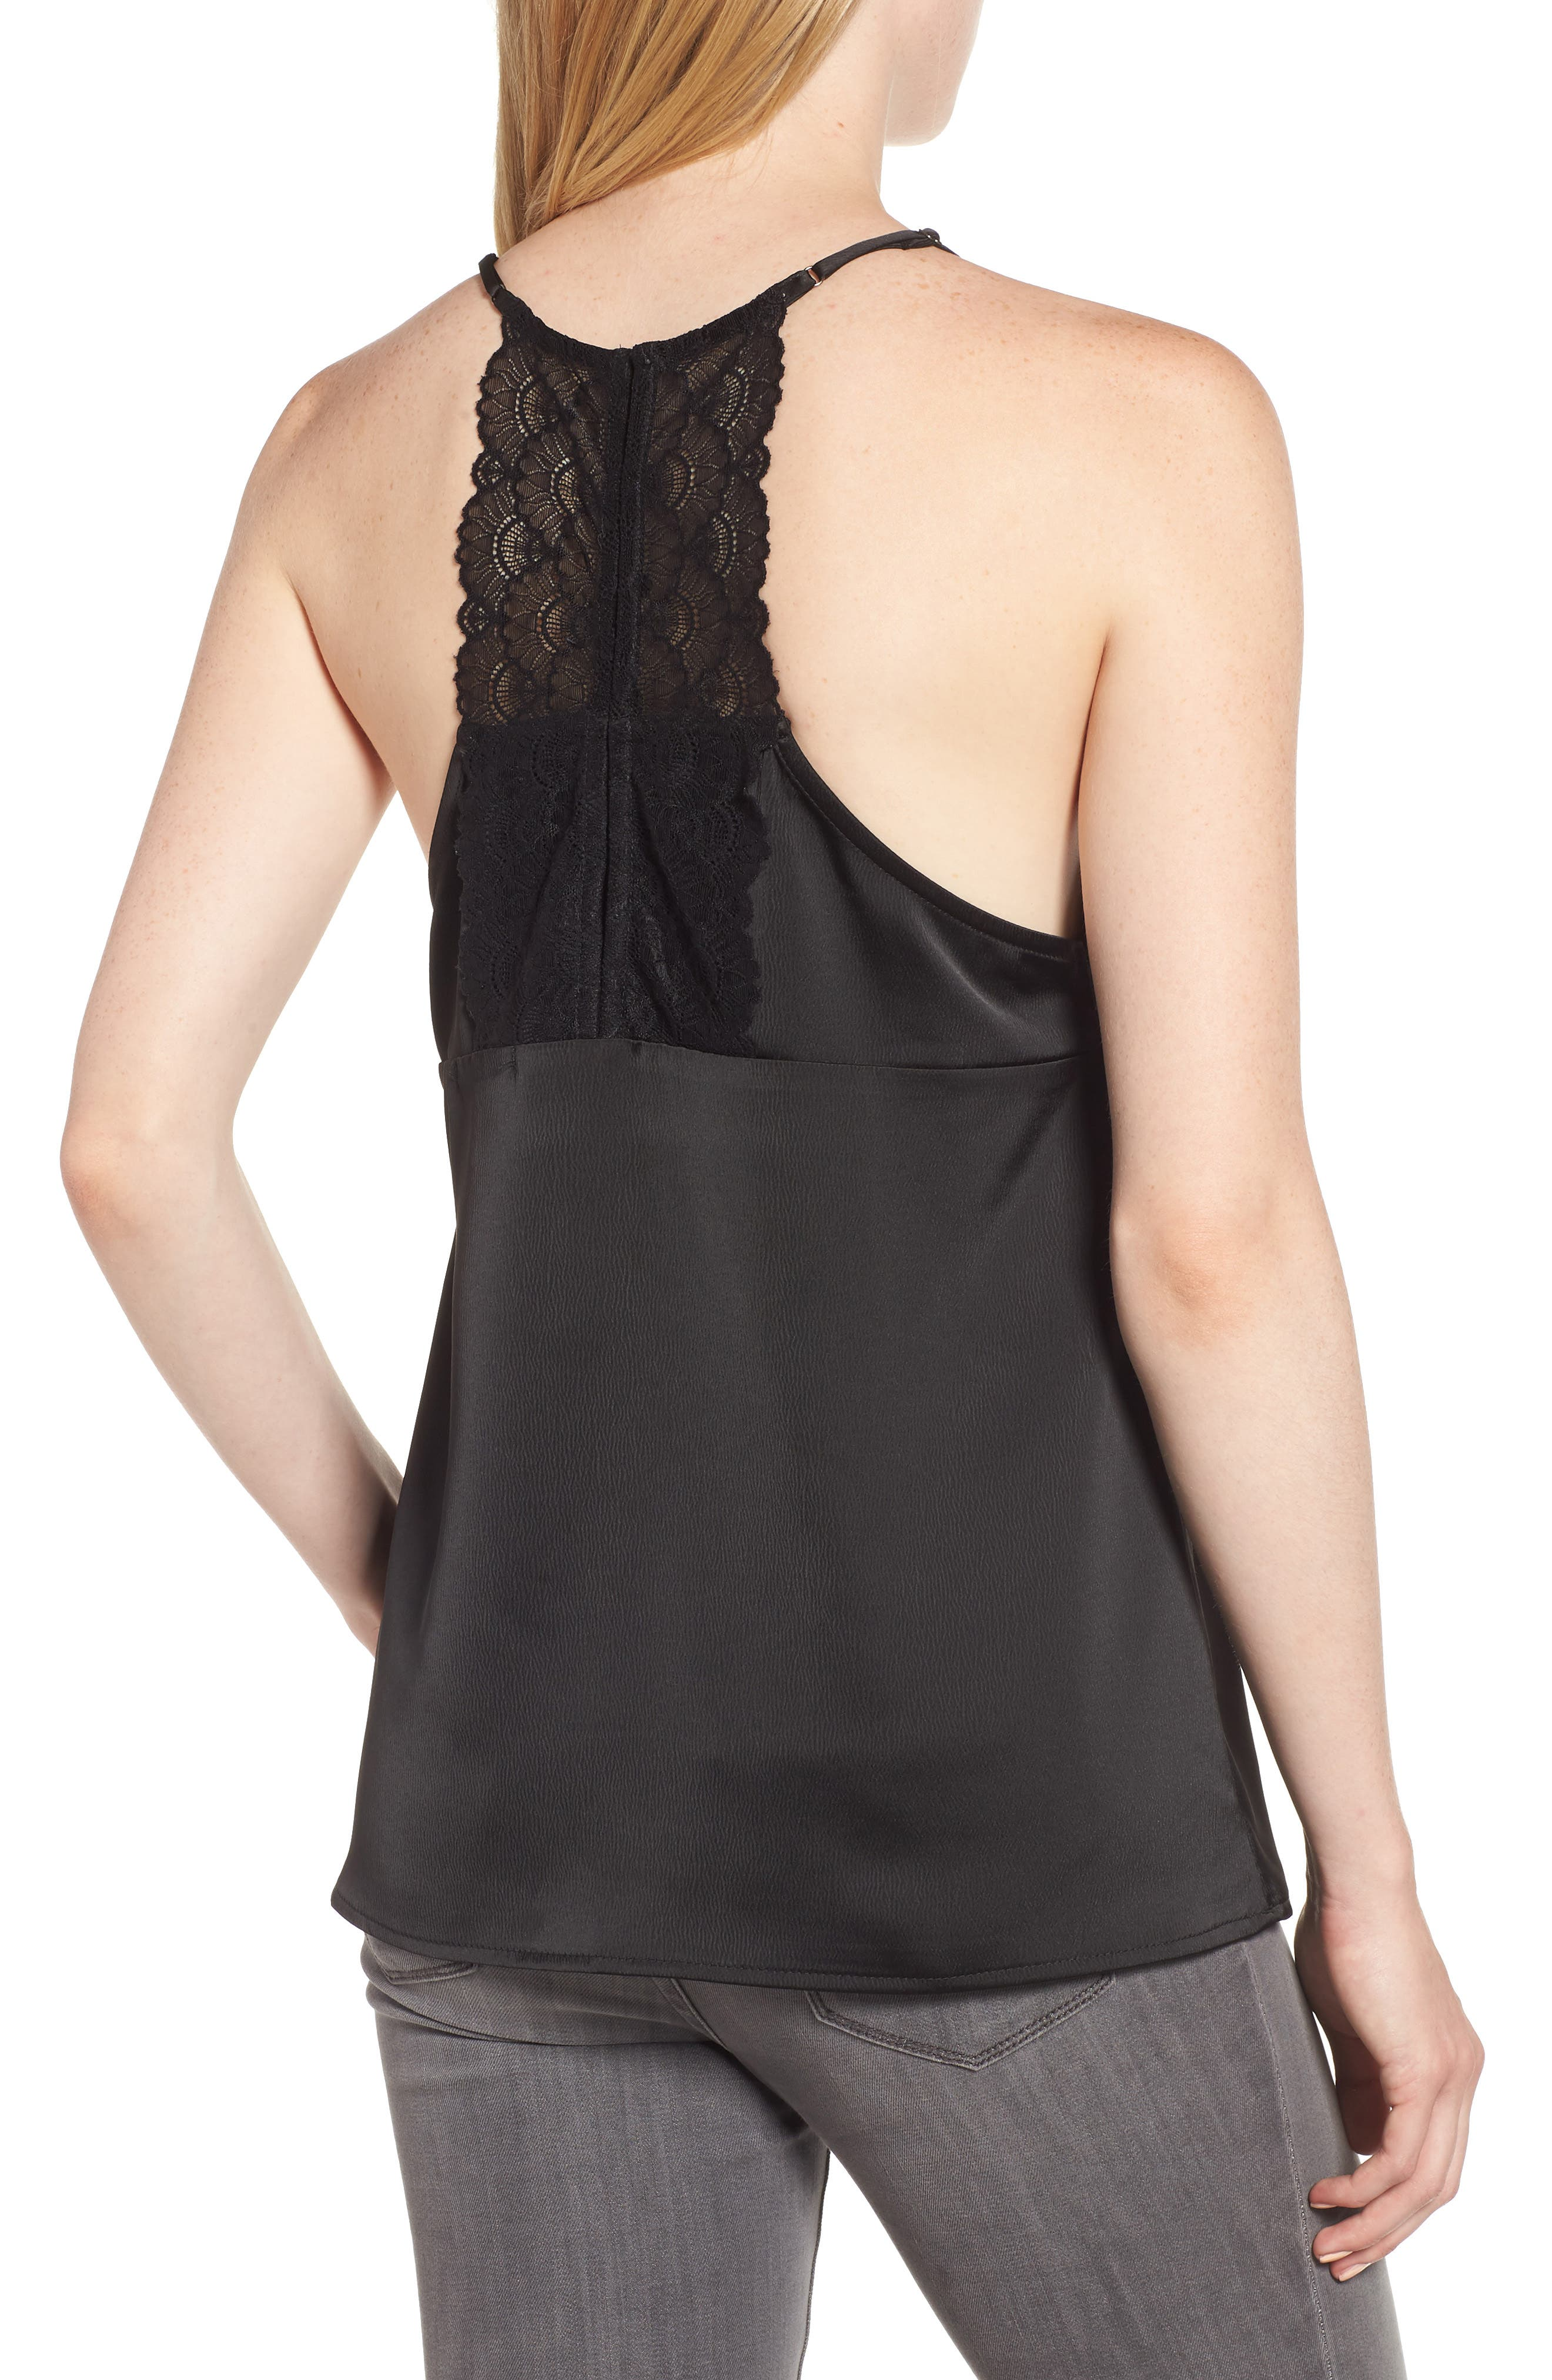 GIBSON, x Living in Yellow Betty Lace Trim Camisole, Alternate thumbnail 2, color, BLACK/ BLACK